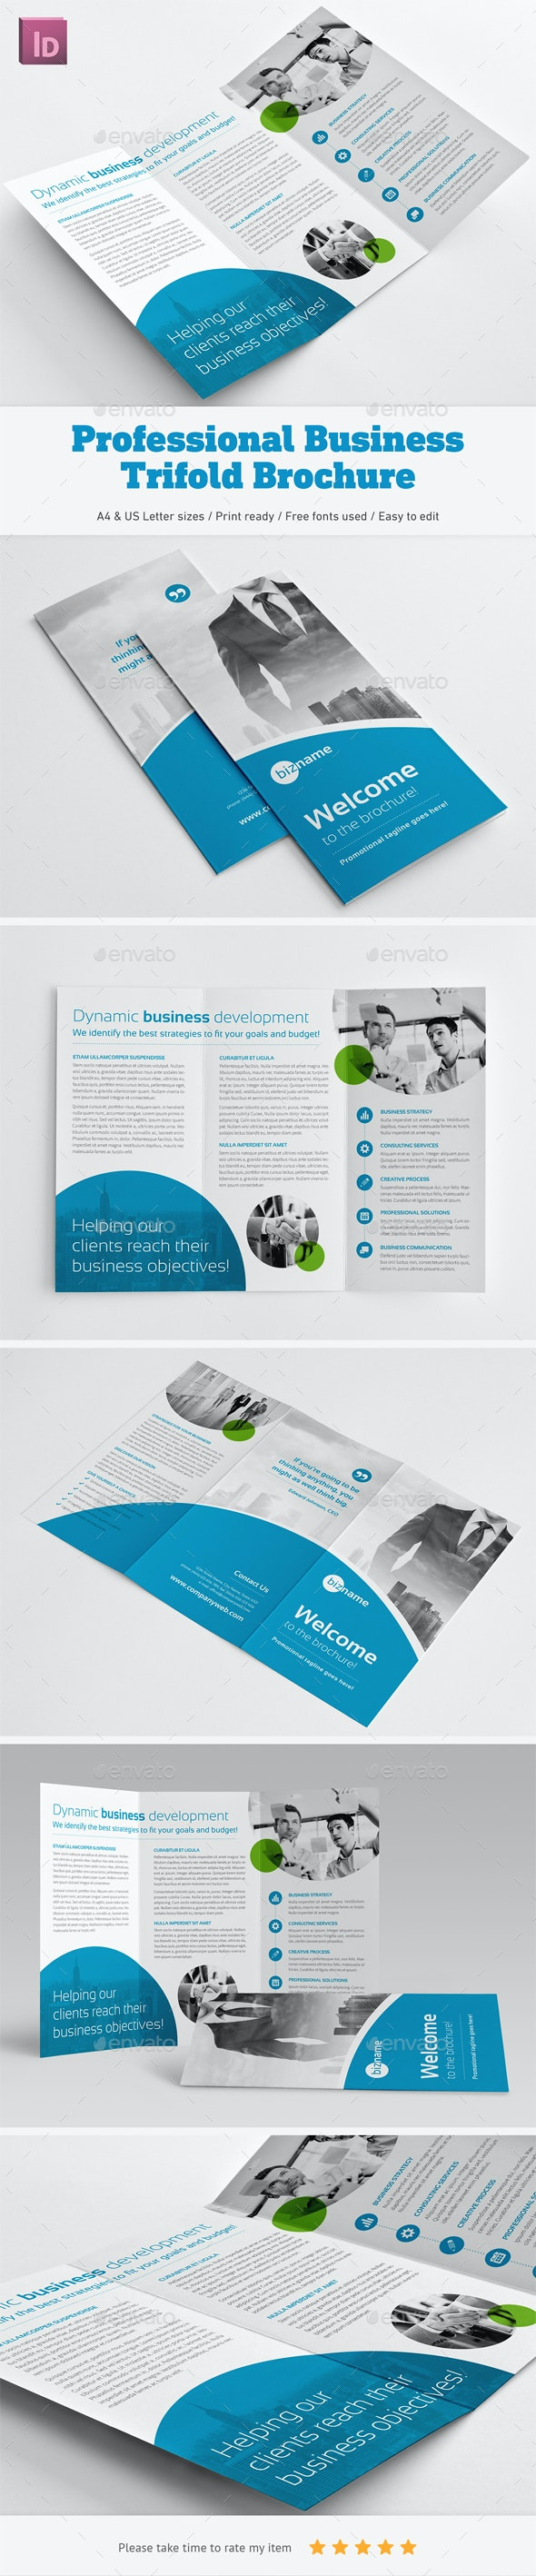 Professional Business Trifold Brochure - Corporate Brochures